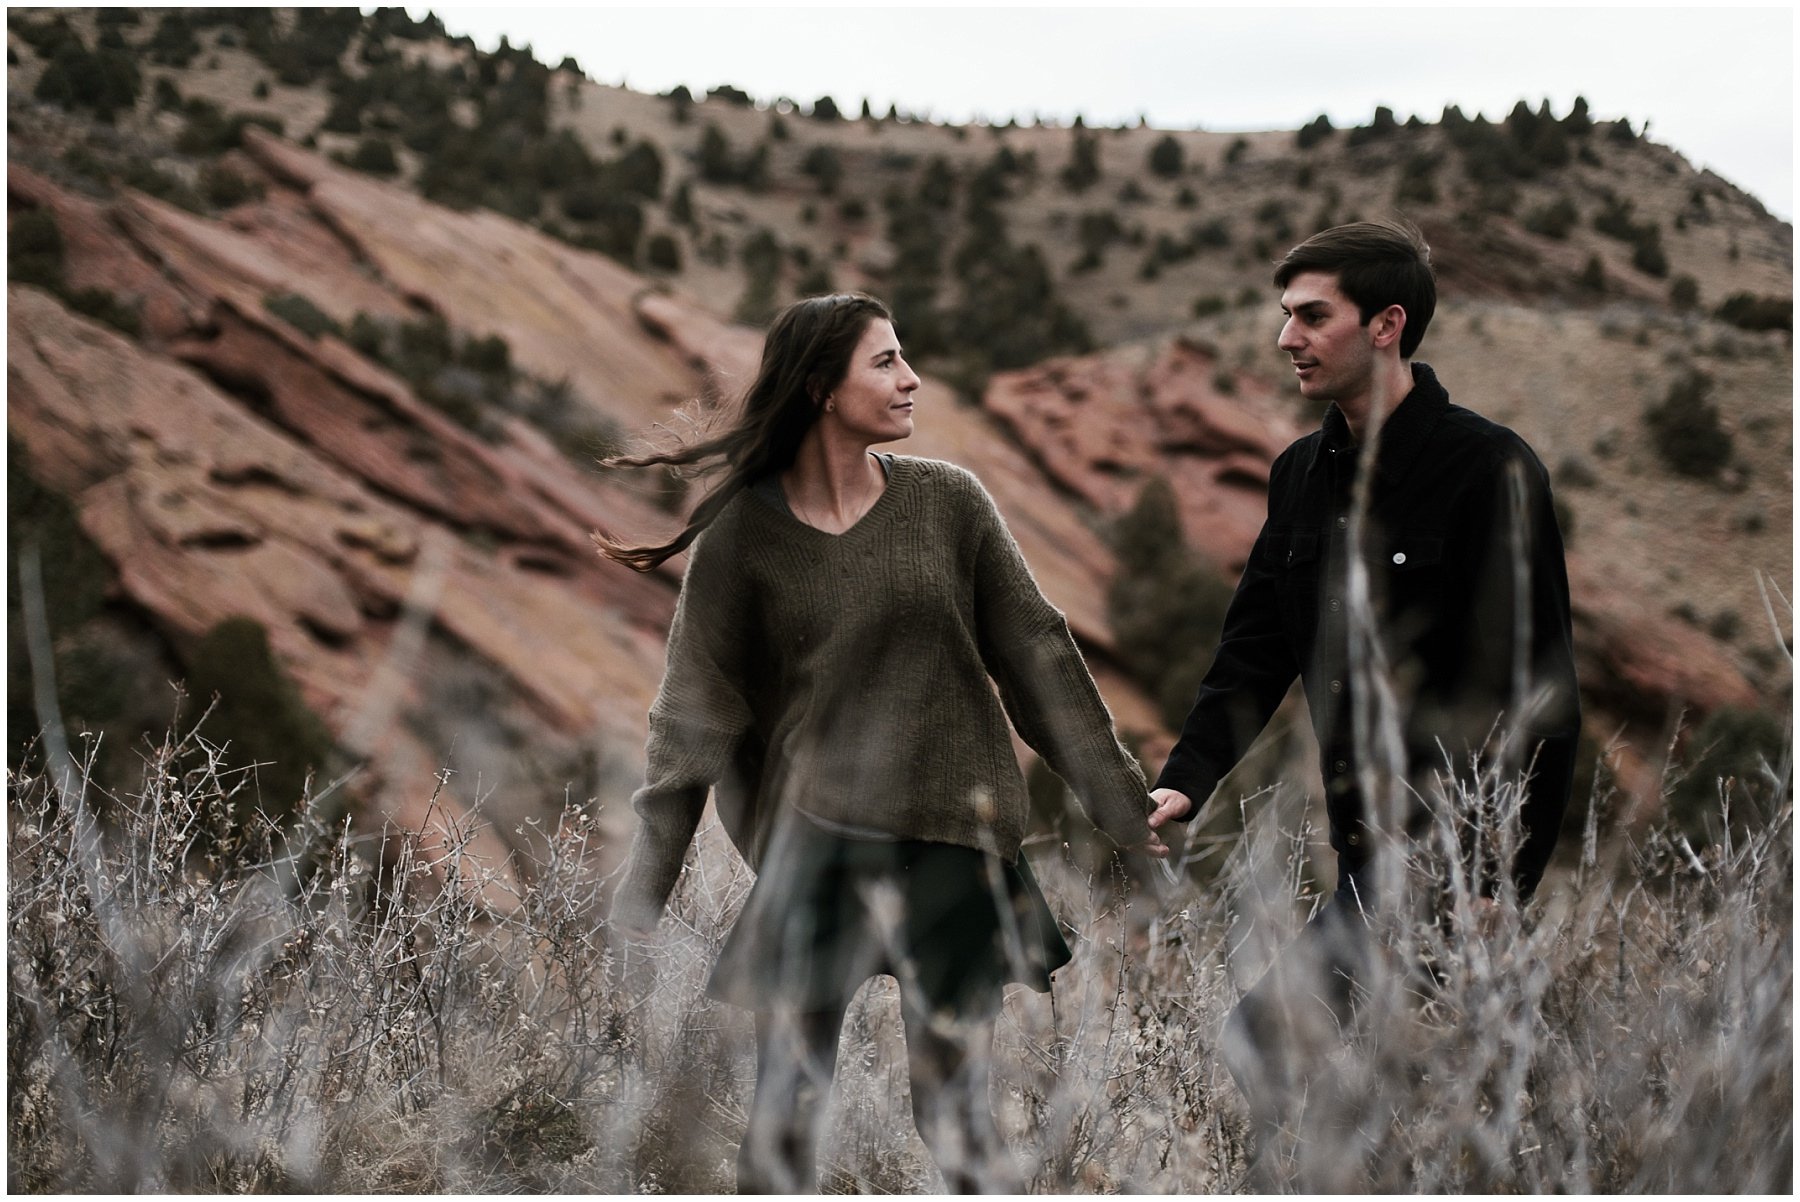 Katesalleyphotography-173_engagement shoot at Red Rocks.jpg